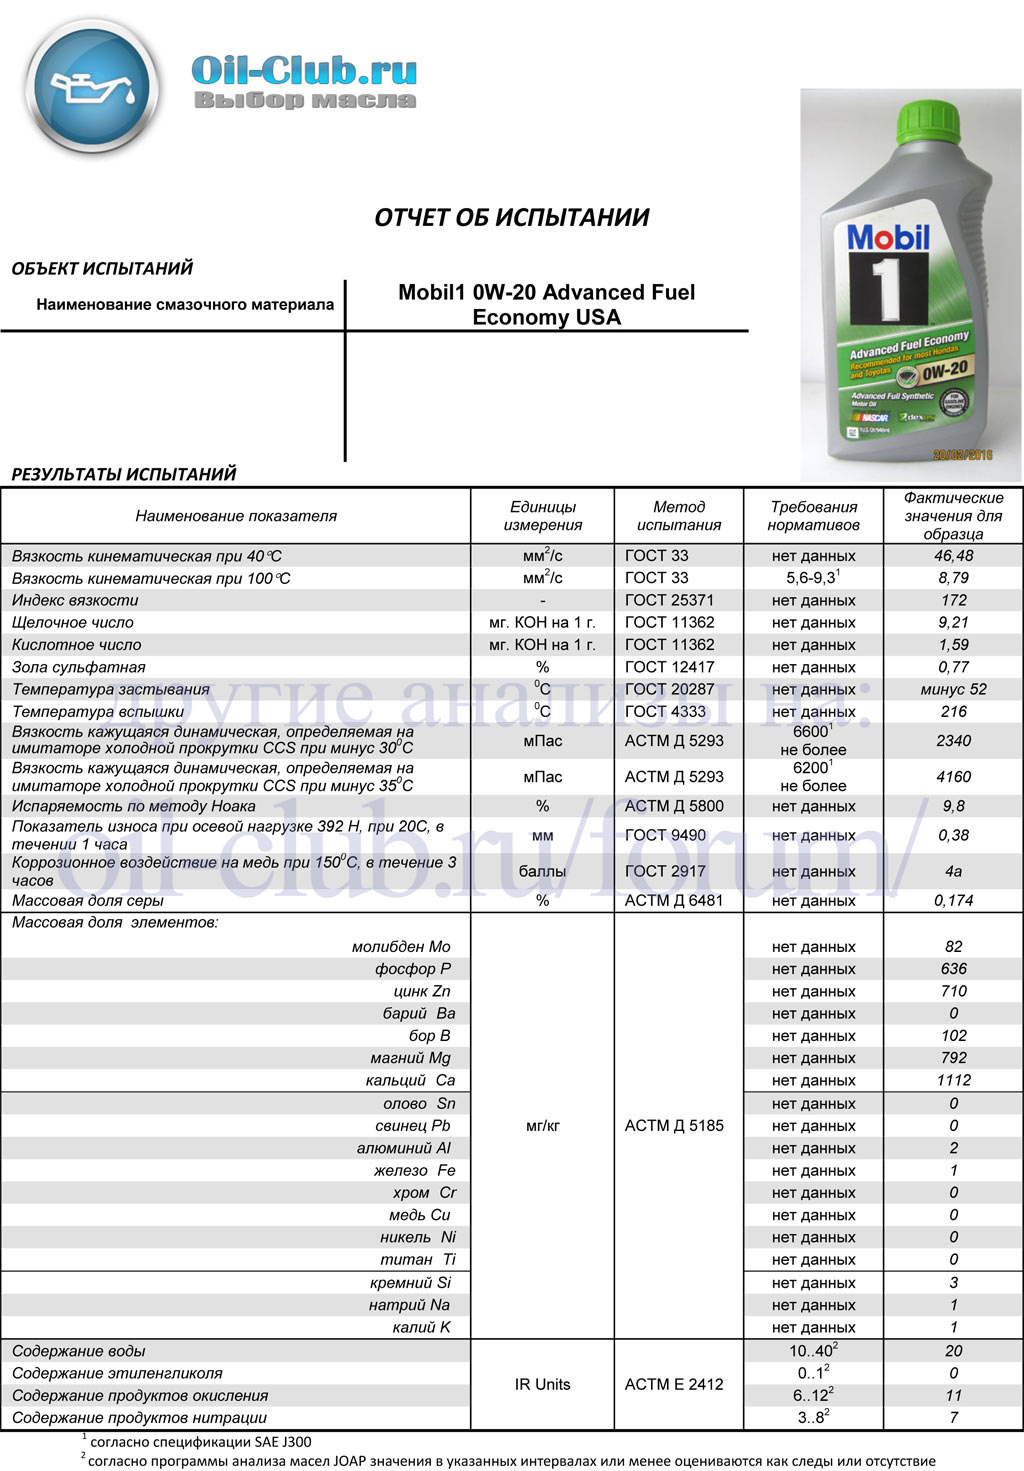 Mobil1-0W-20-Advanced-Fuel-Economy-USA-_VOA-BASE_.jpg